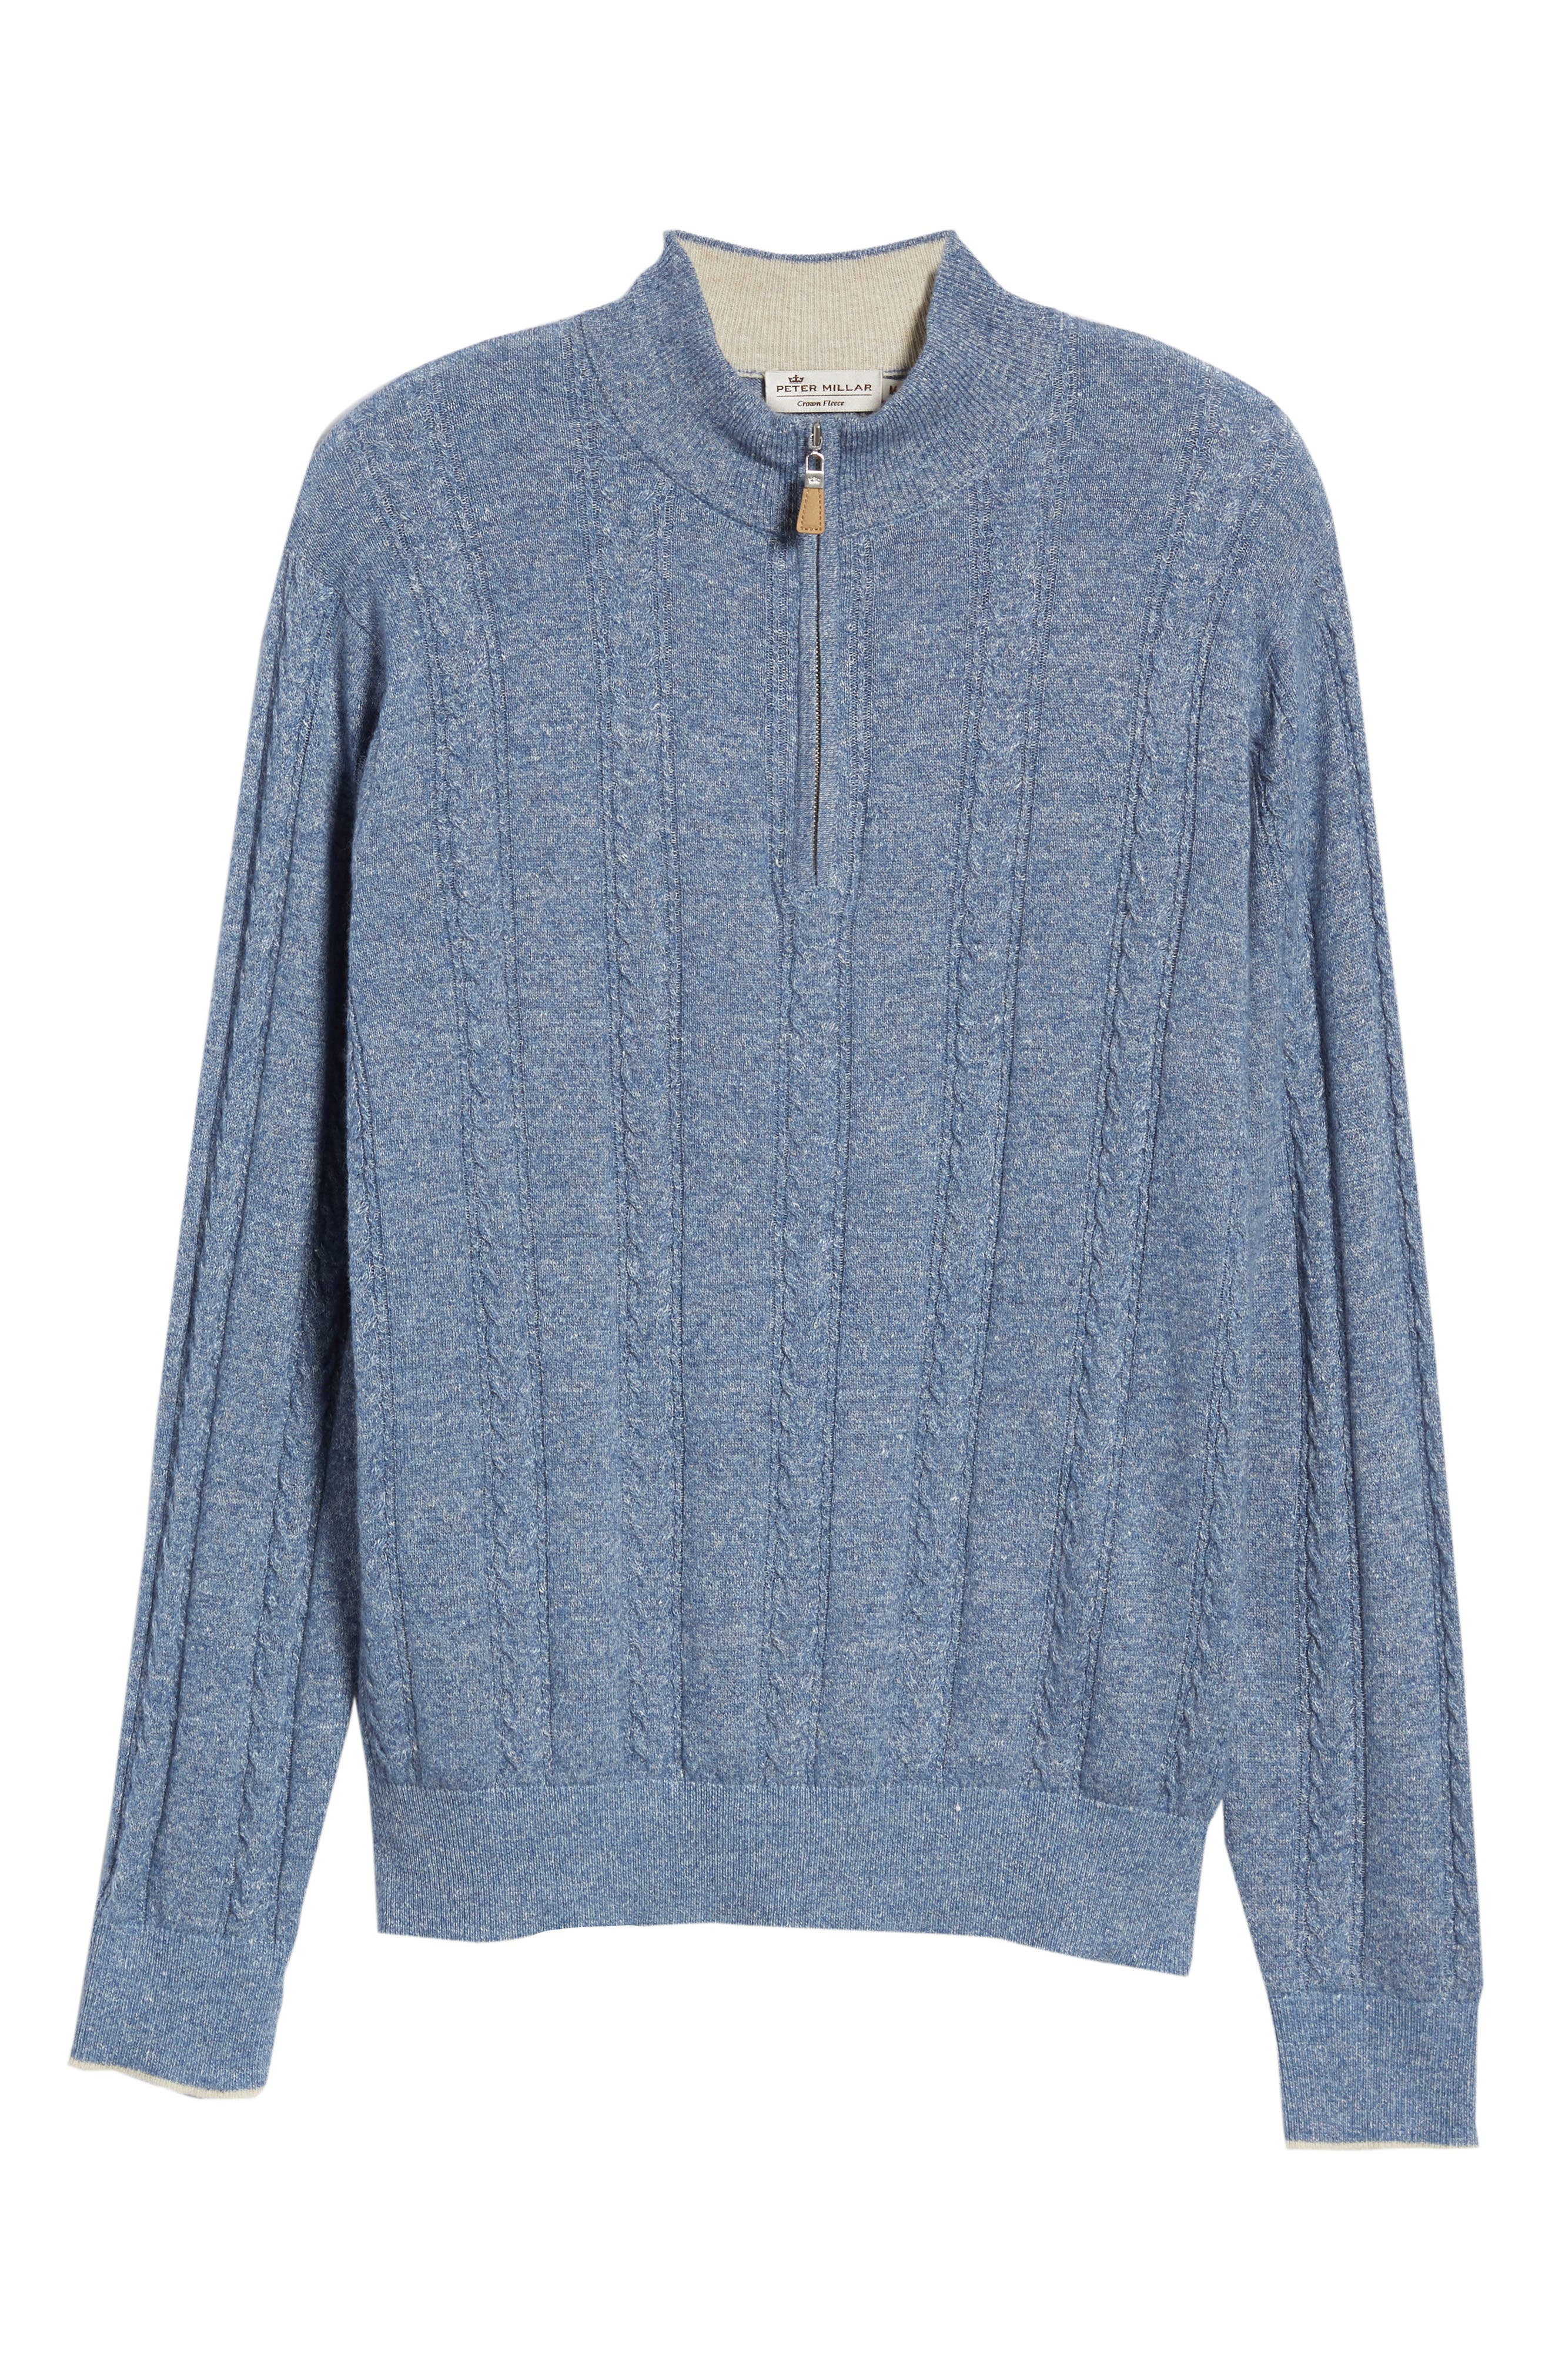 Crown Fleece Cashmere & Linen Quarter Zip Sweater,                             Alternate thumbnail 6, color,                             Atlas Blue